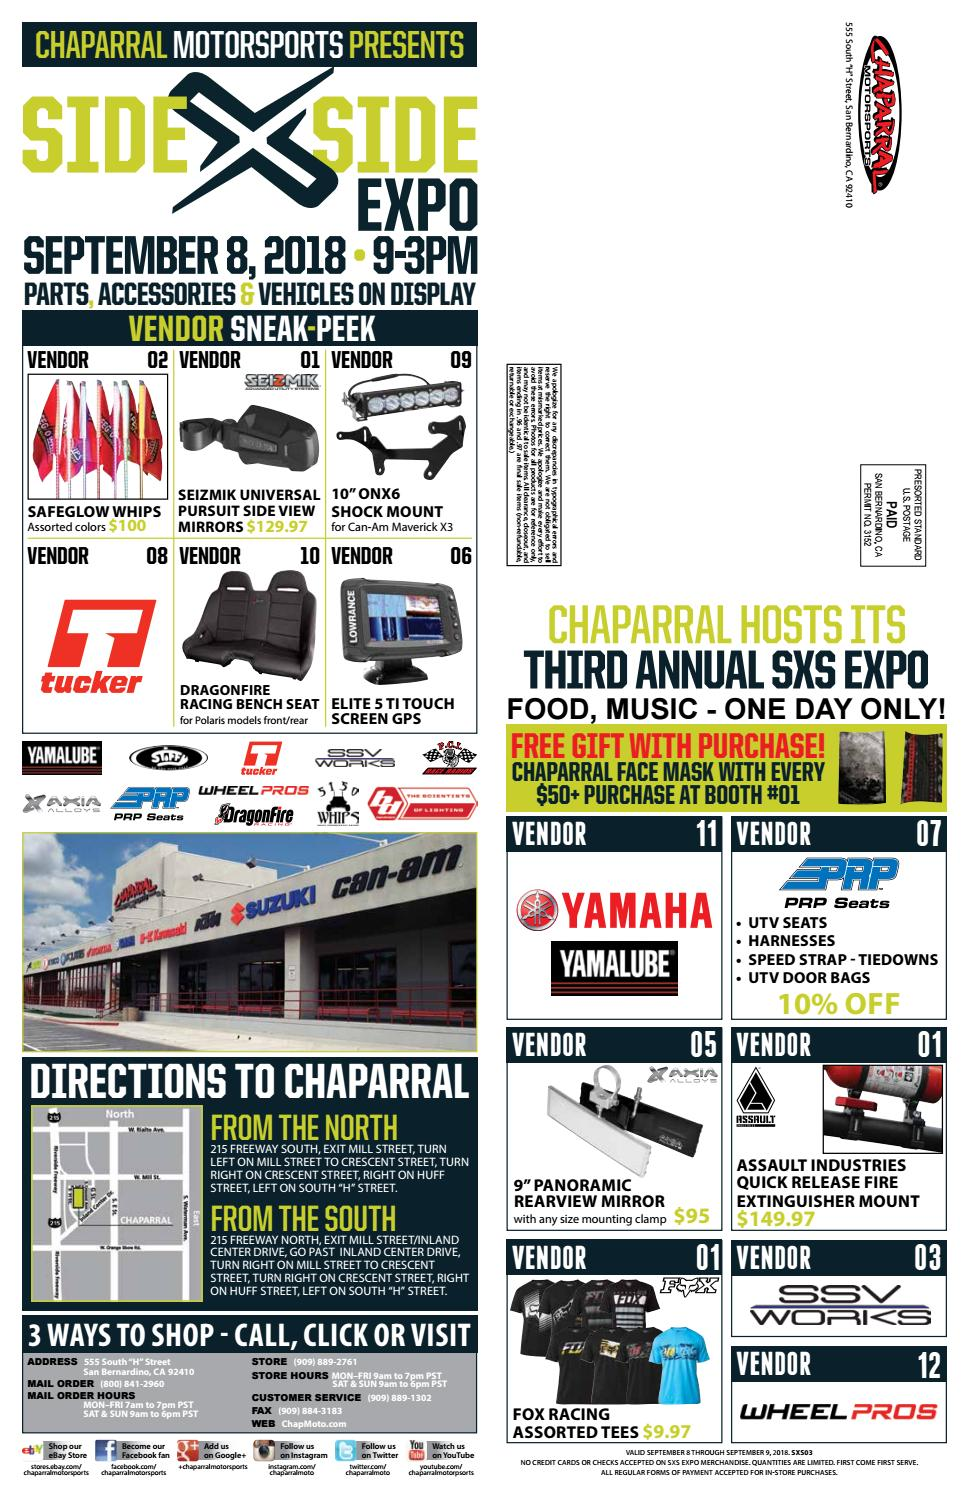 2018 Chaparral Motorsport Side by Side Expo Sales Flyer by